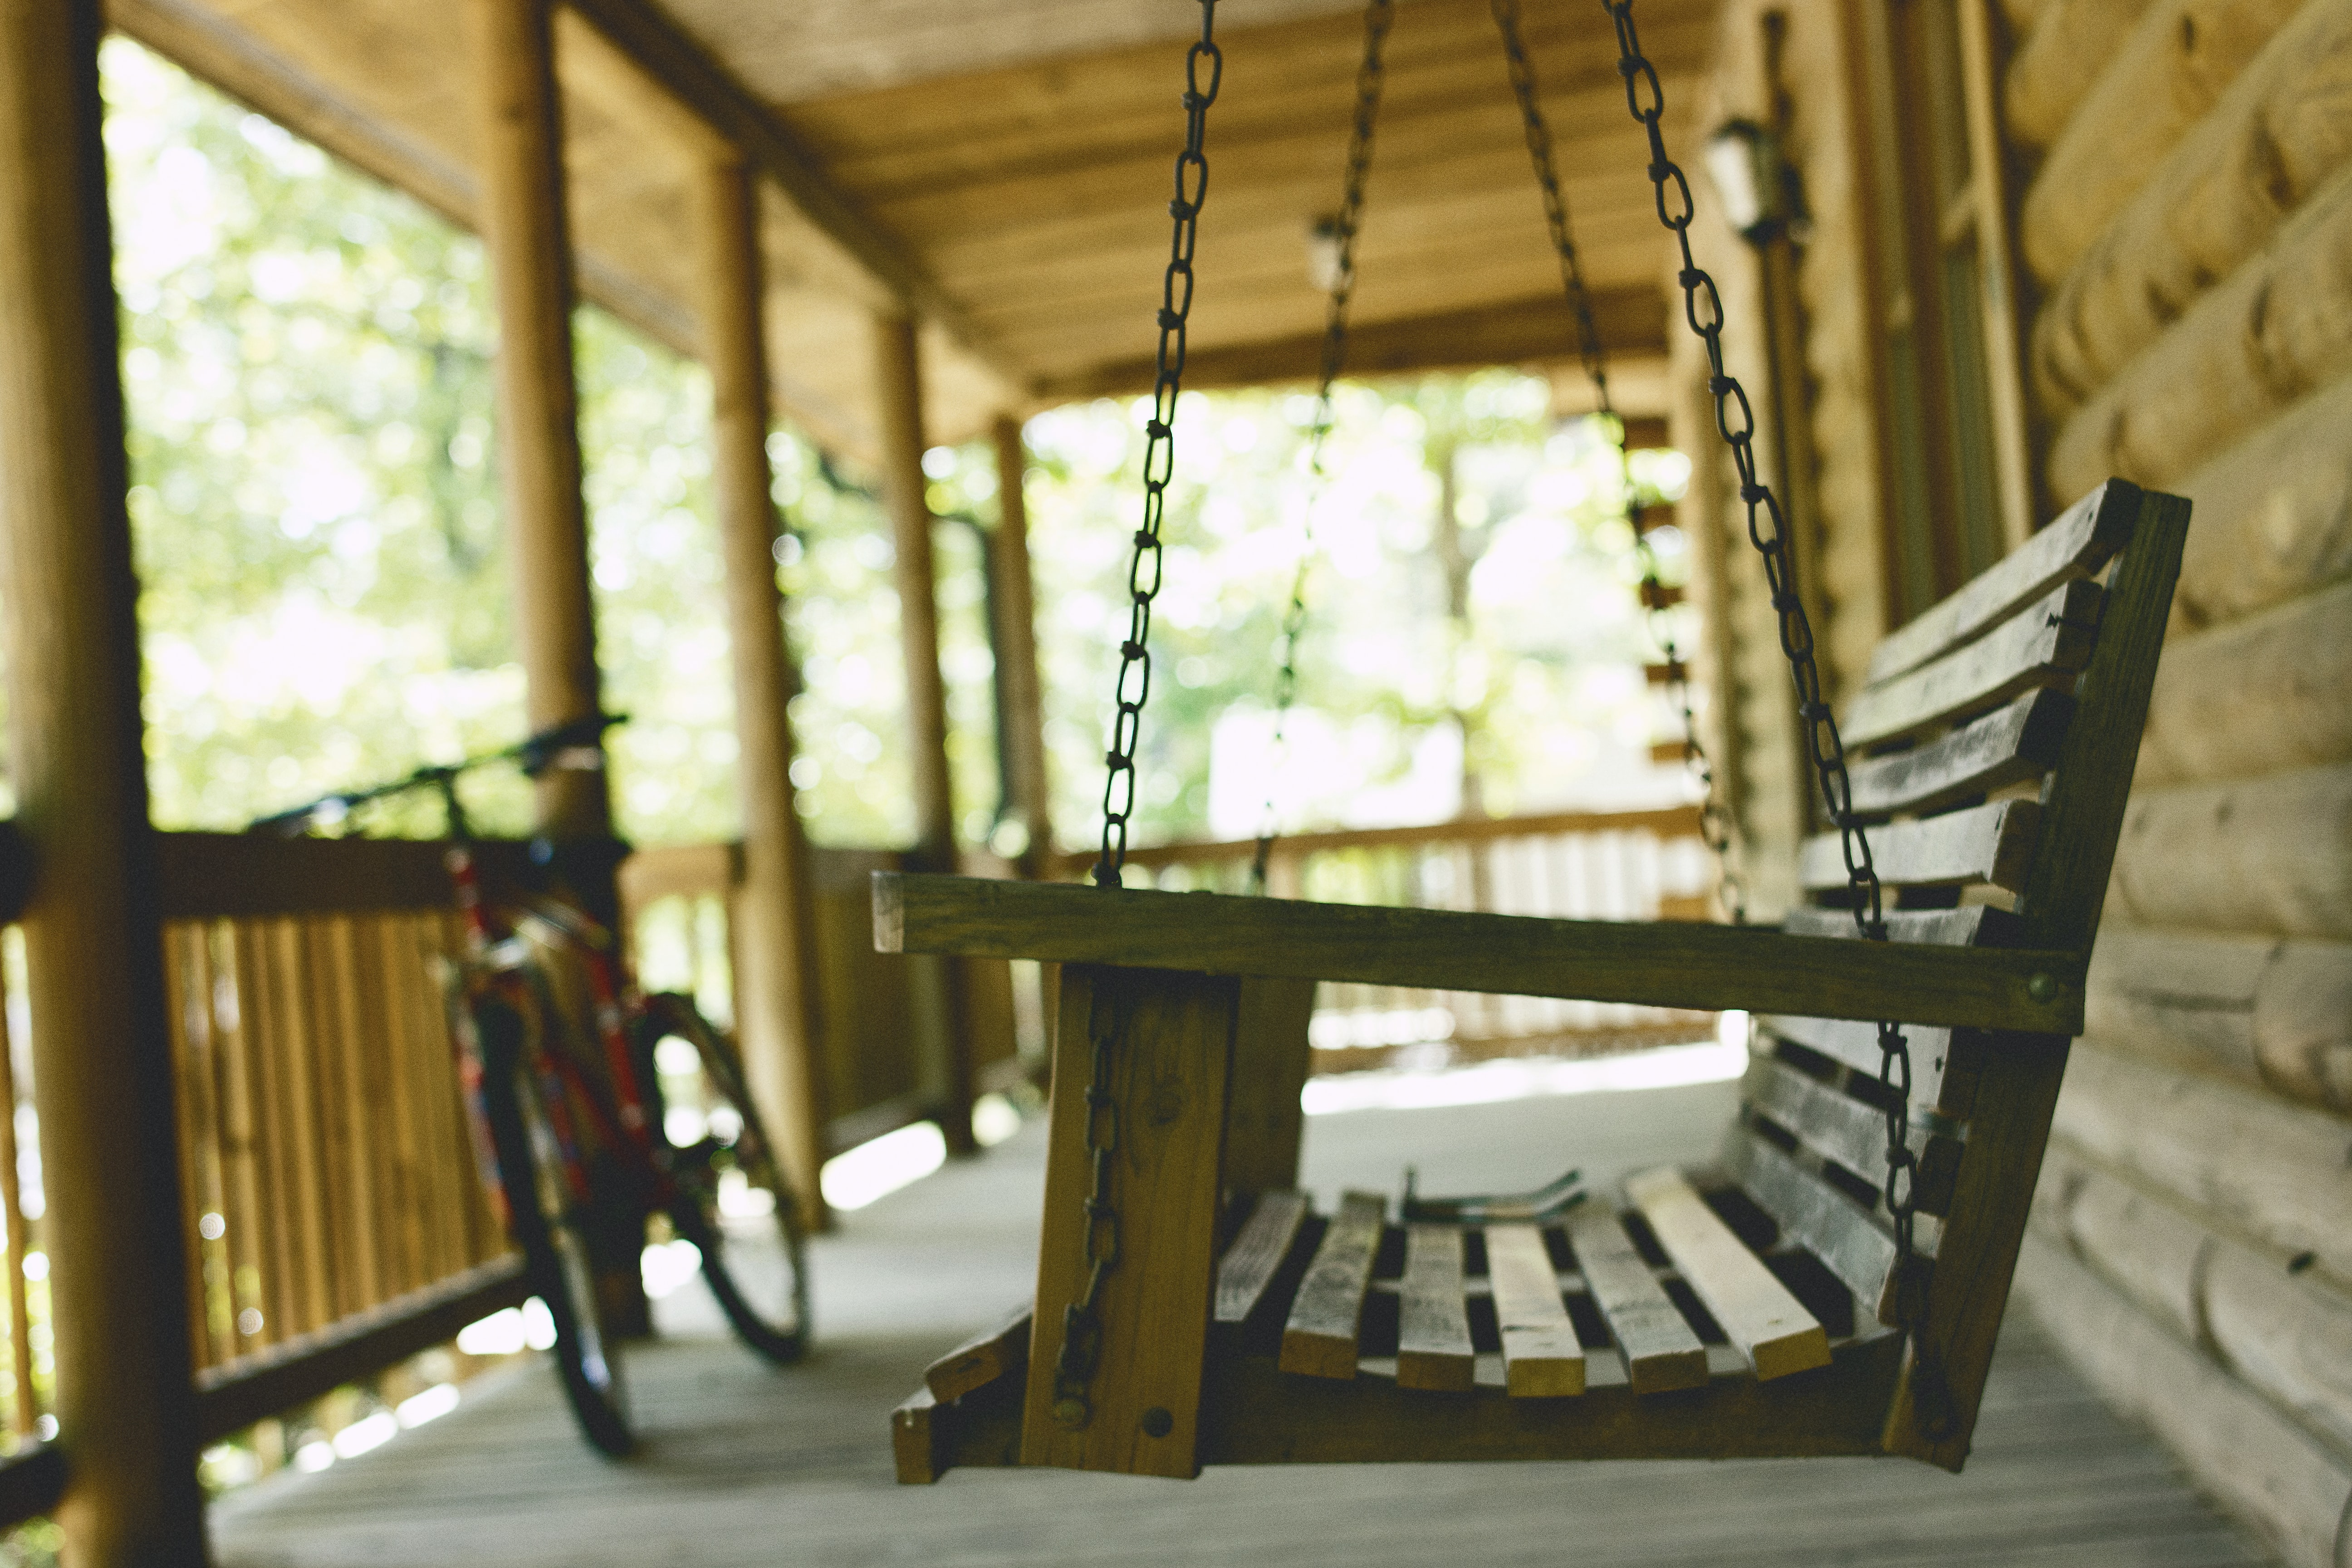 A swing and a bike on the porch of a cabin